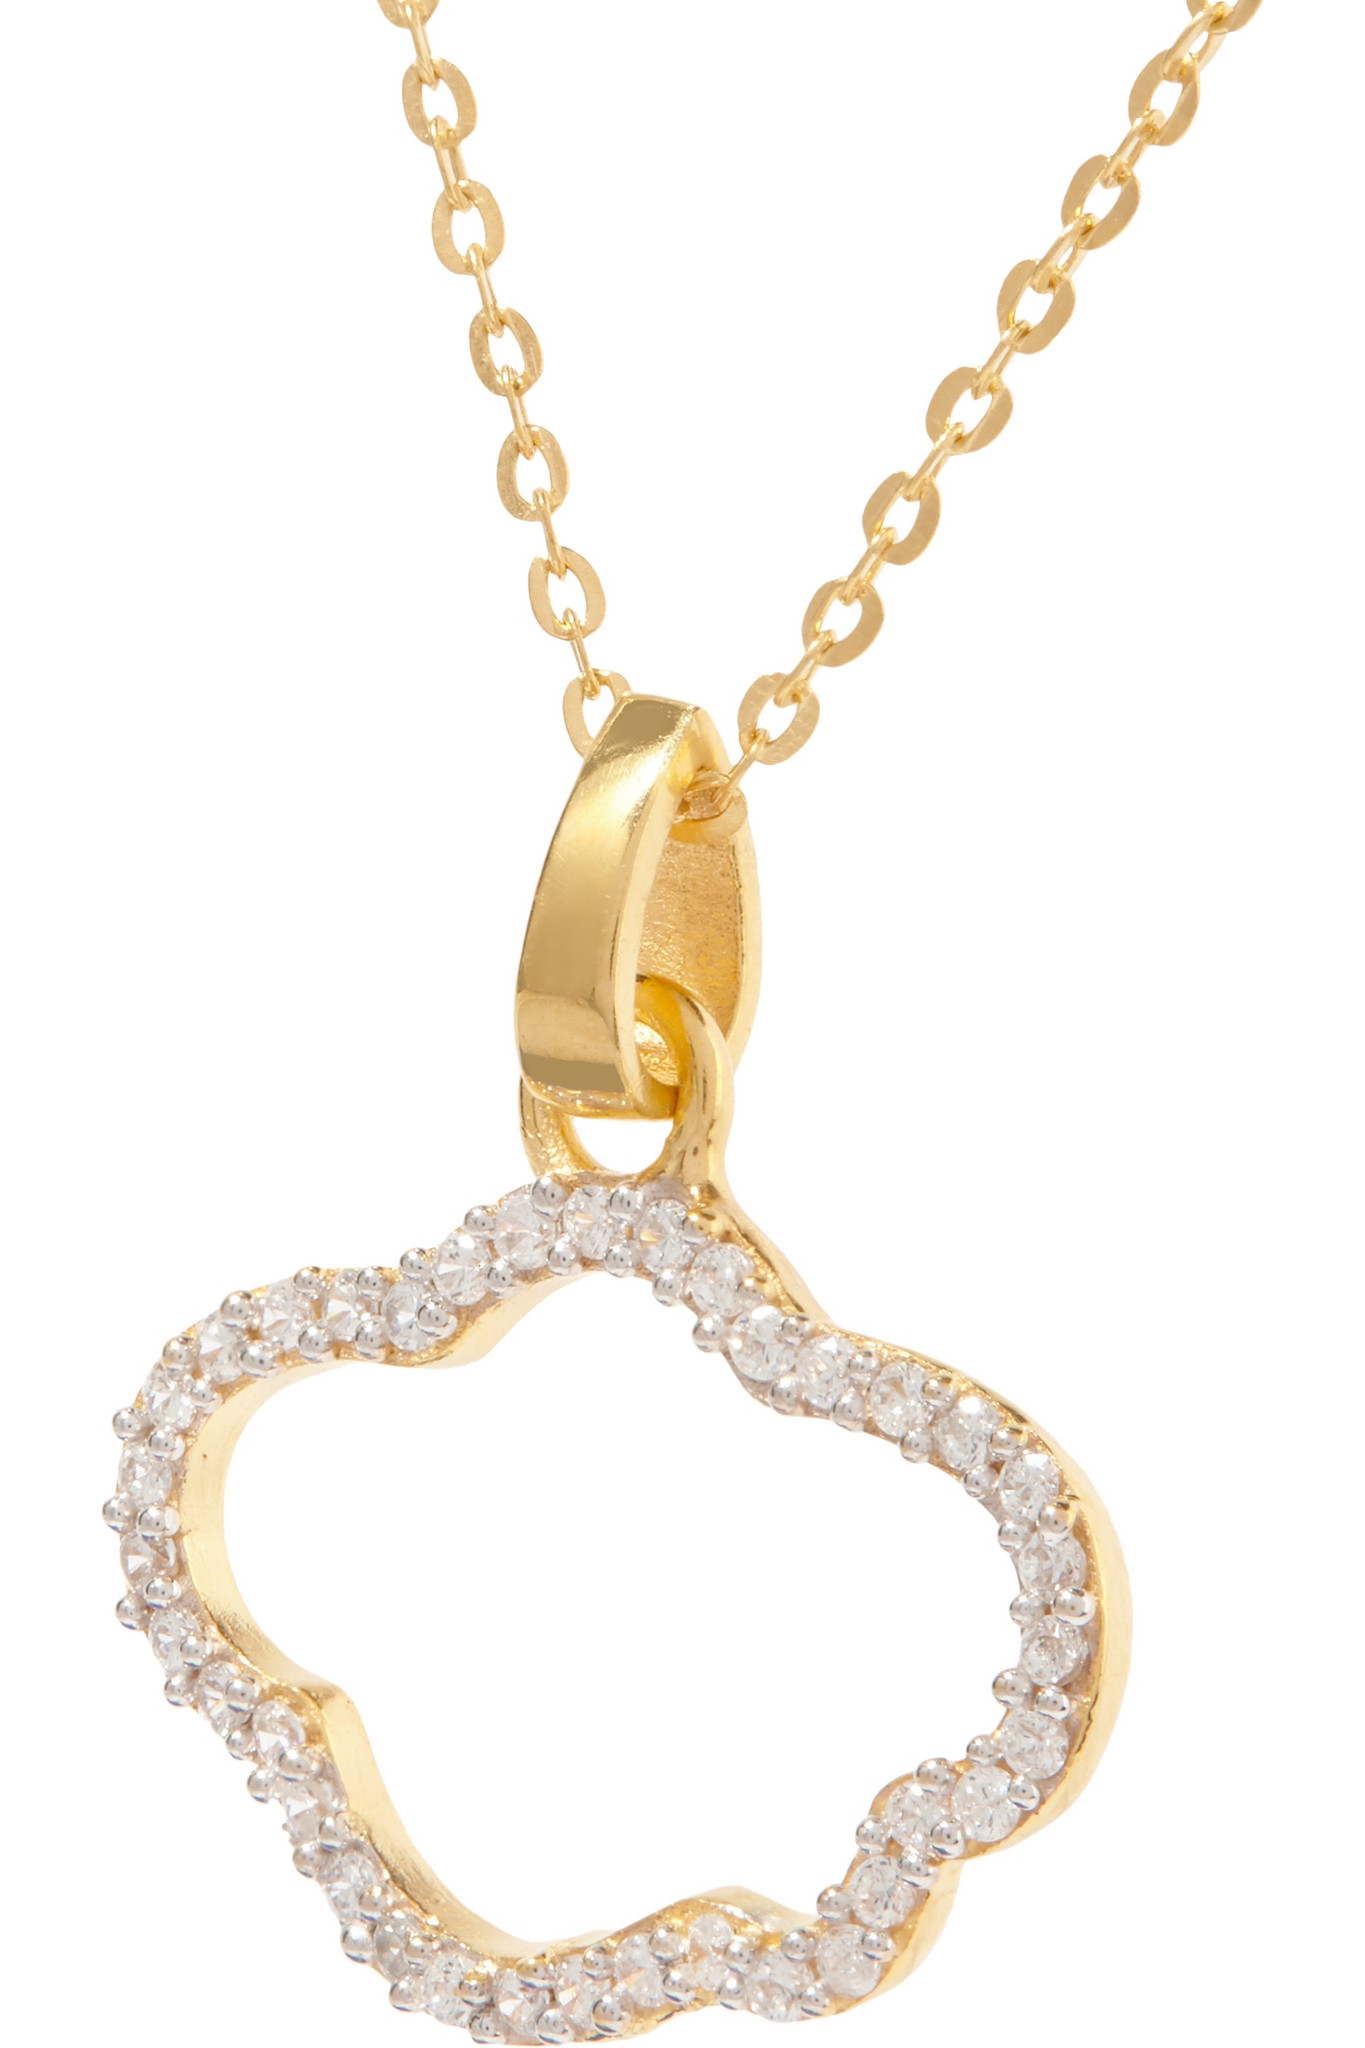 Aamaya By Priyanka Cloud Gold-plated Topaz Necklace in Metallic